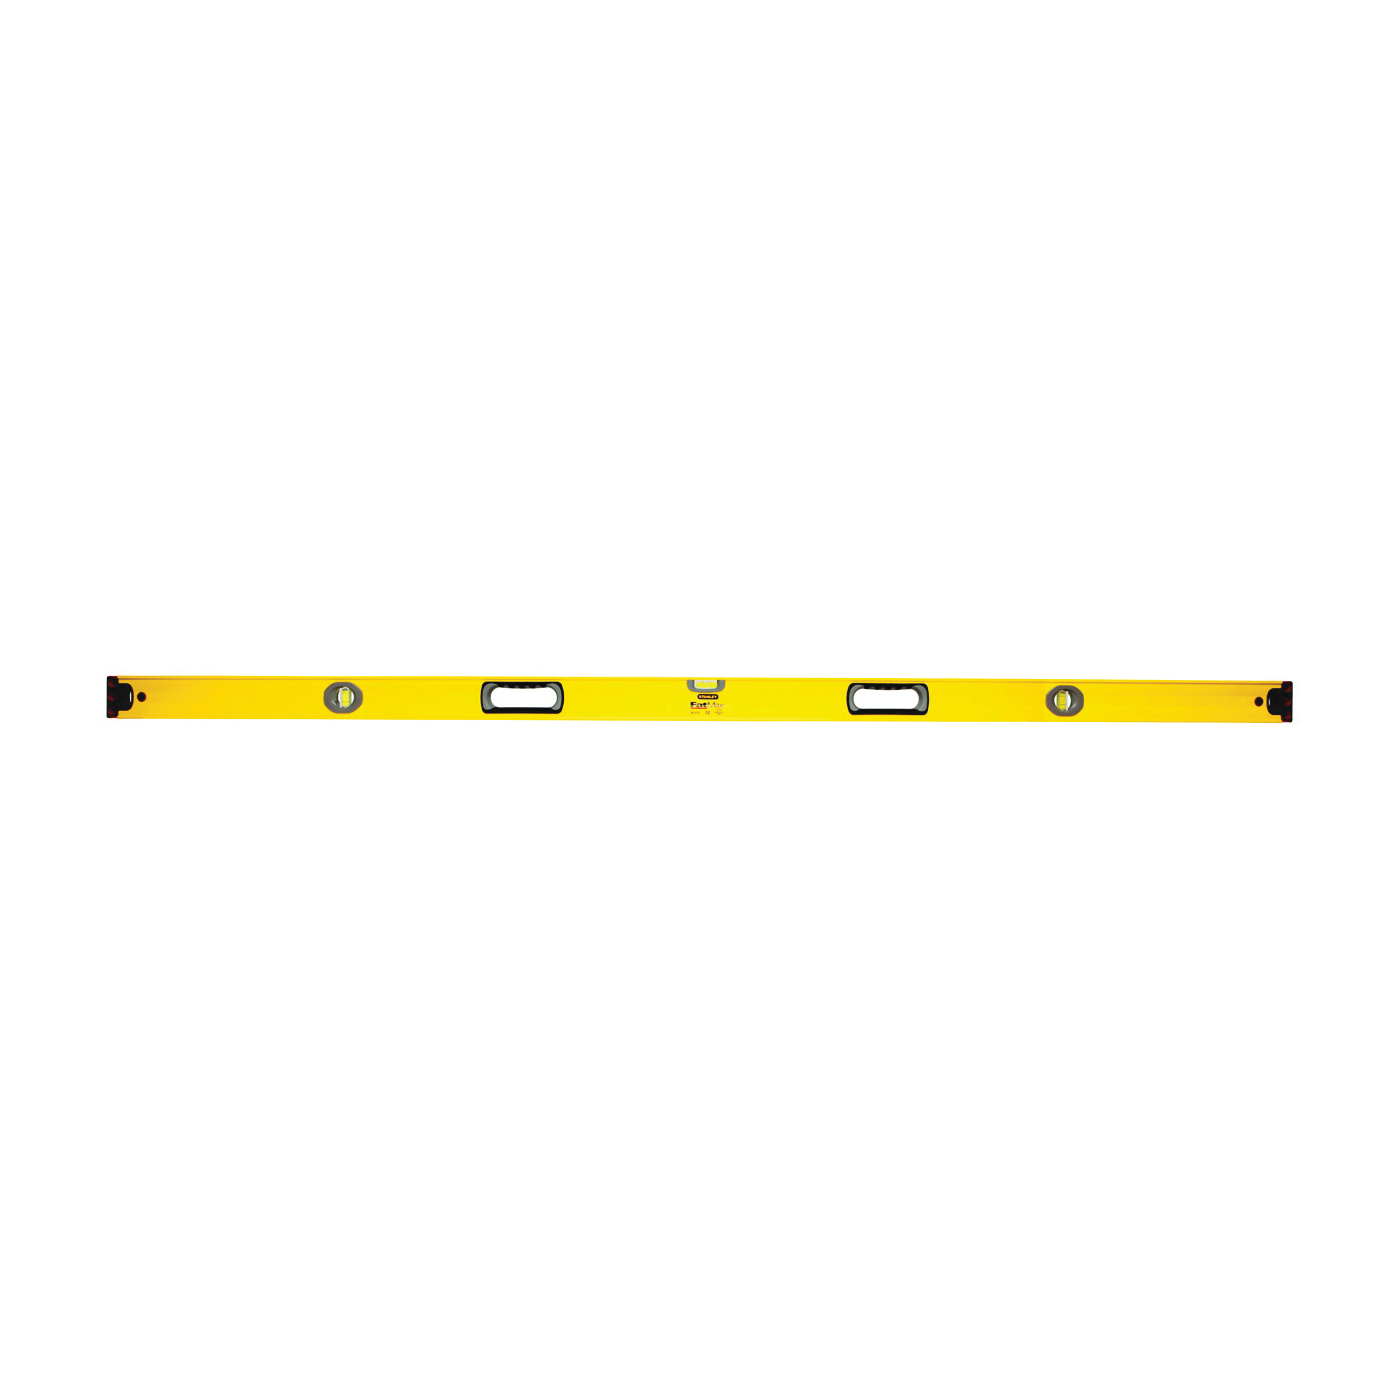 Picture of STANLEY 43-572 Box Beam Level, 72 in L, 3 -Vial, 2 -Hang Hole, Non-Magnetic, Aluminum, Black/Yellow